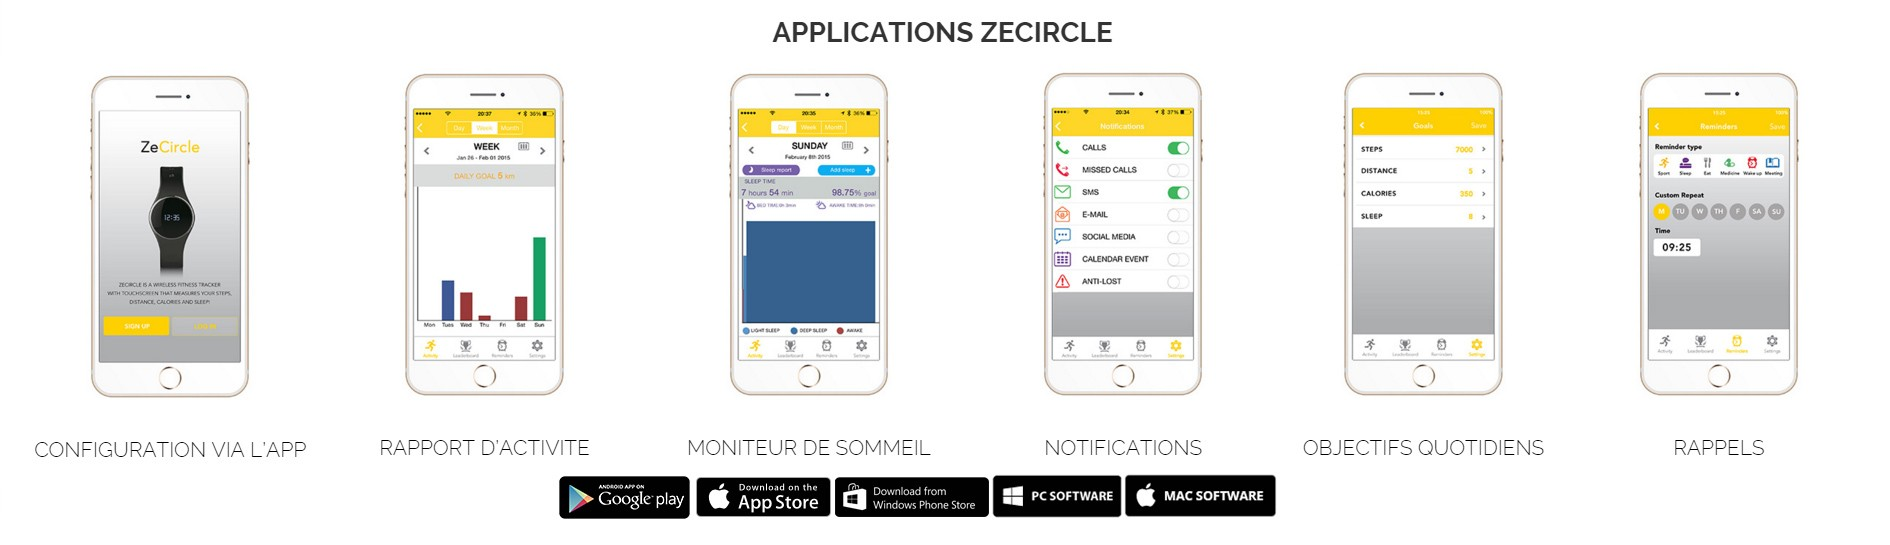 Mykronoz Zecircle application